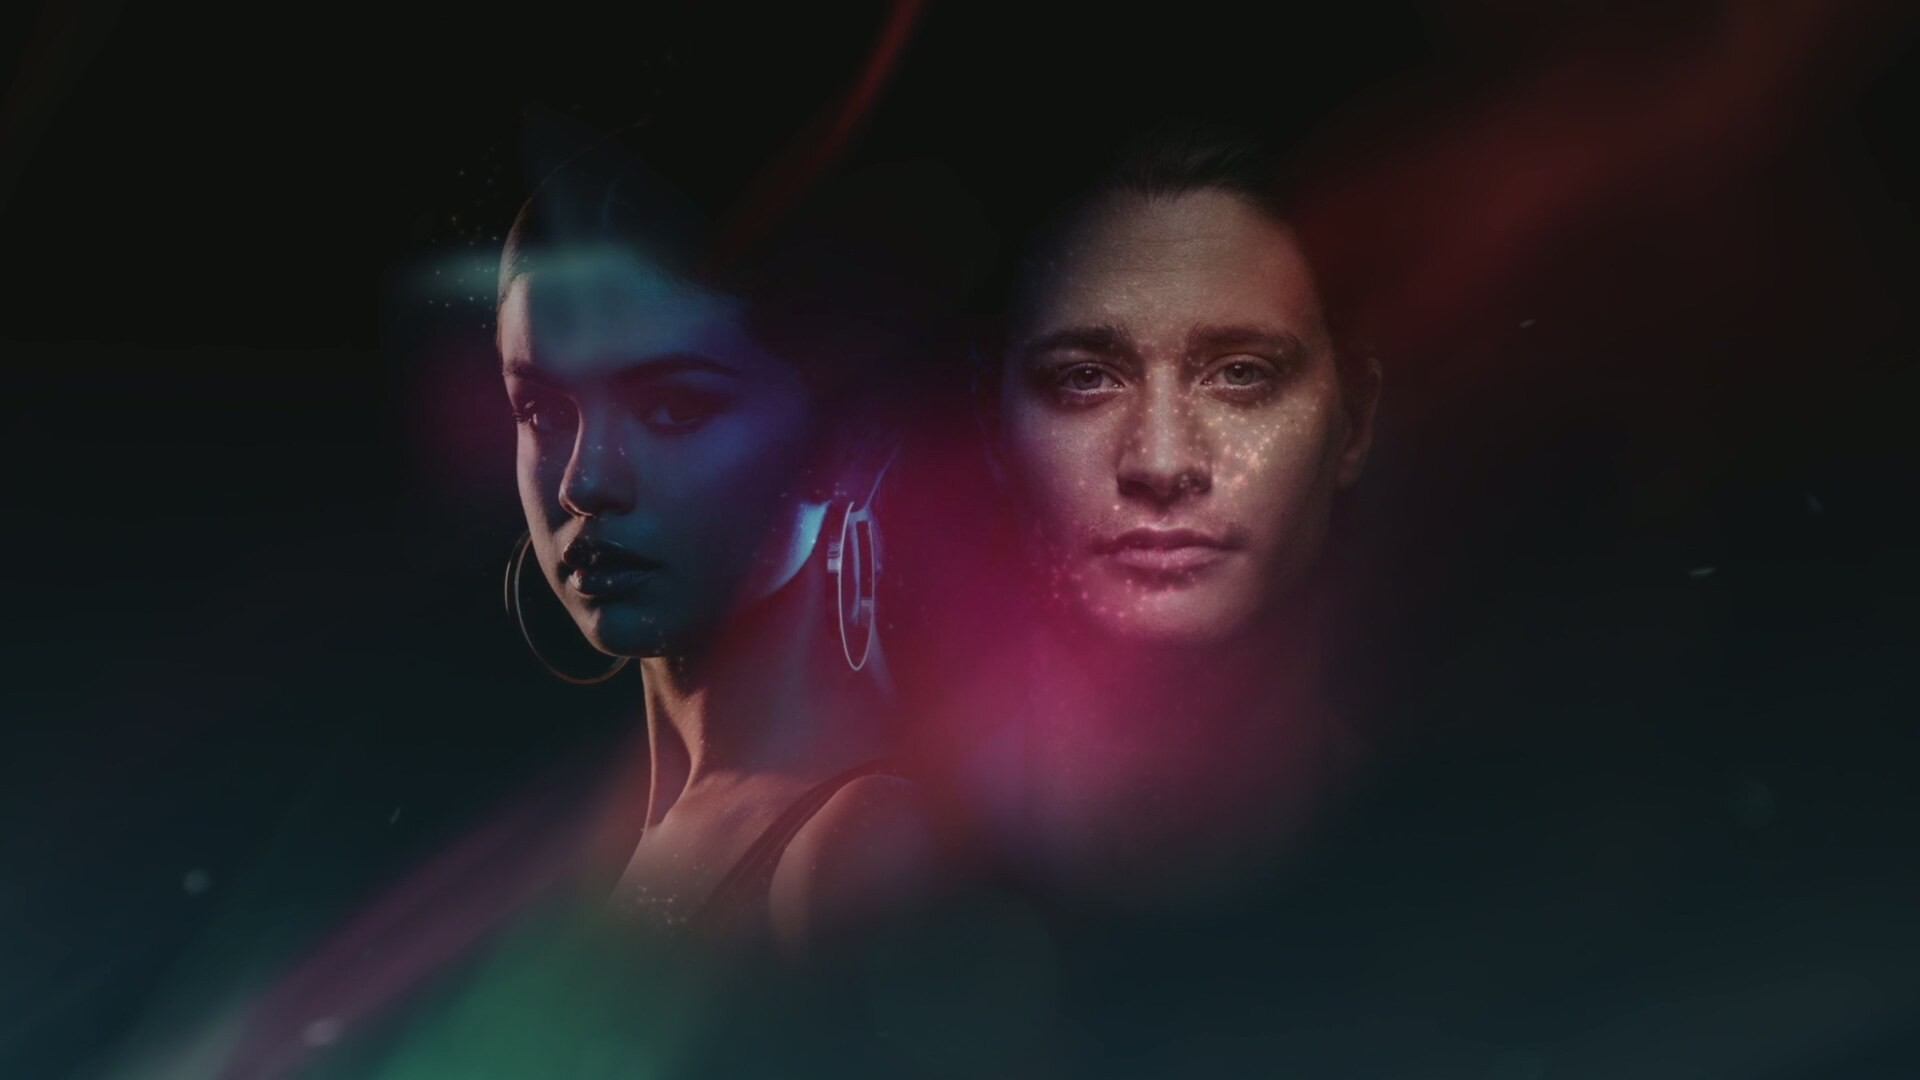 Selena Gomez assina colaborao no novo single do DJ Kygo, 'It Ain't Me' (Foto: Divulgao)